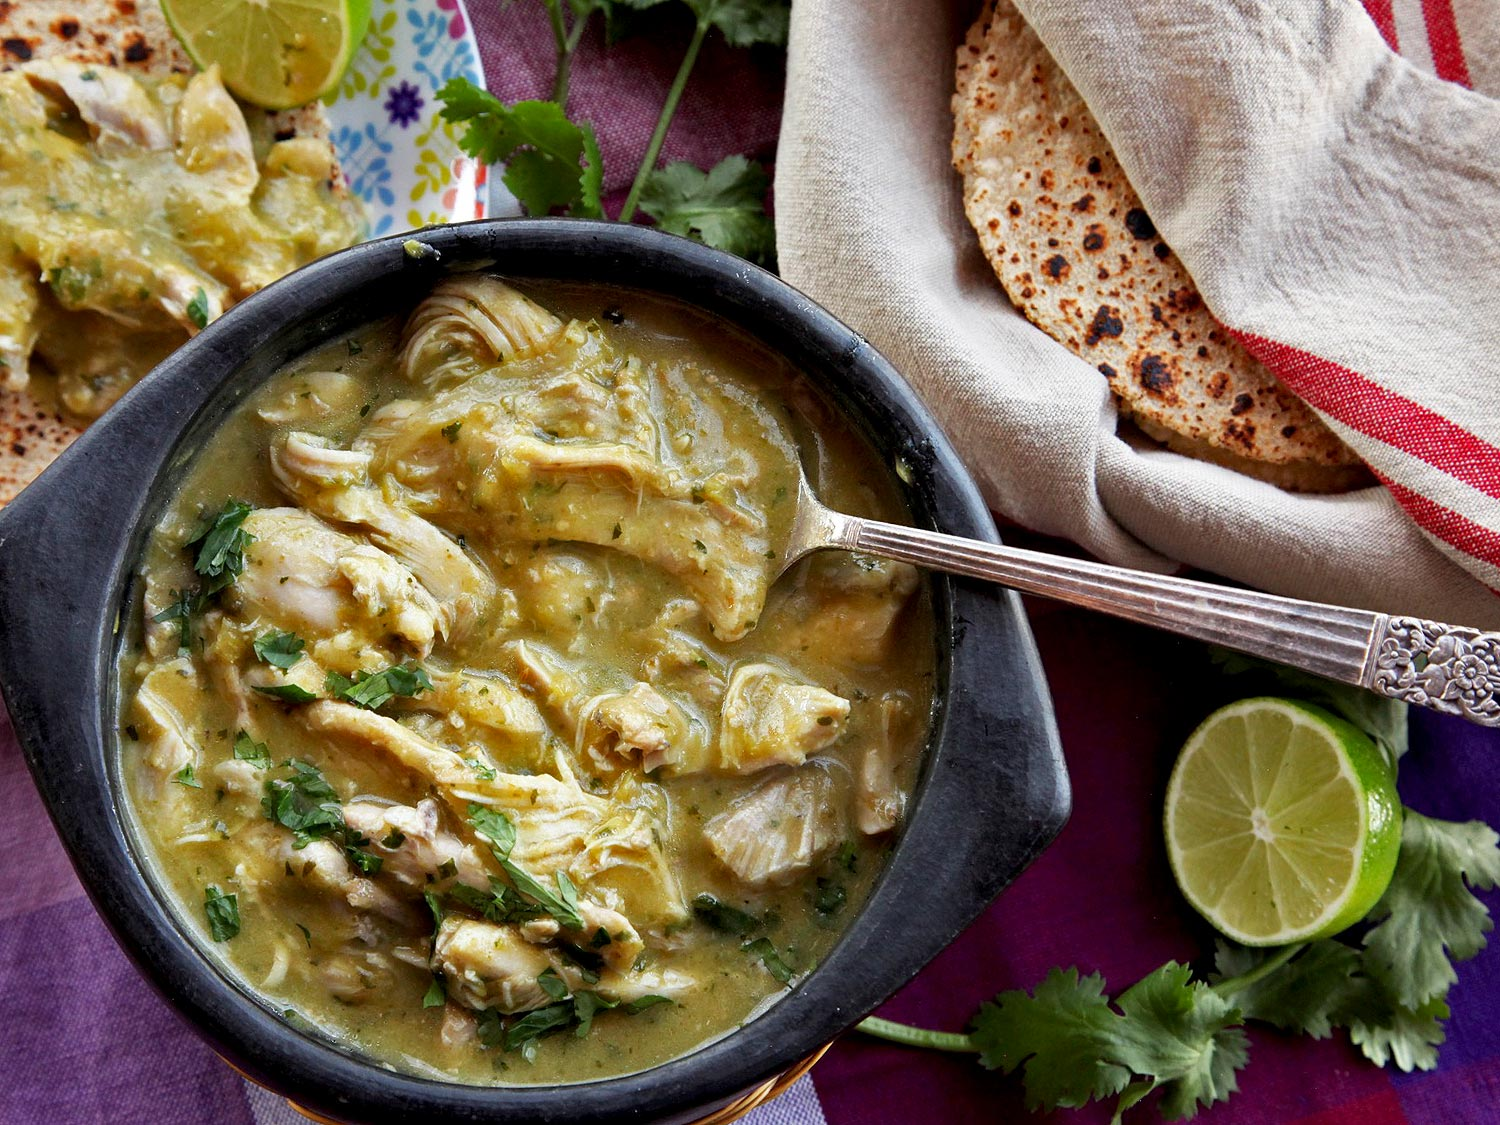 20150420-chicken-chile-verde-pressure-cooker-easy-10-thumb-1500xauto-421905.jpg